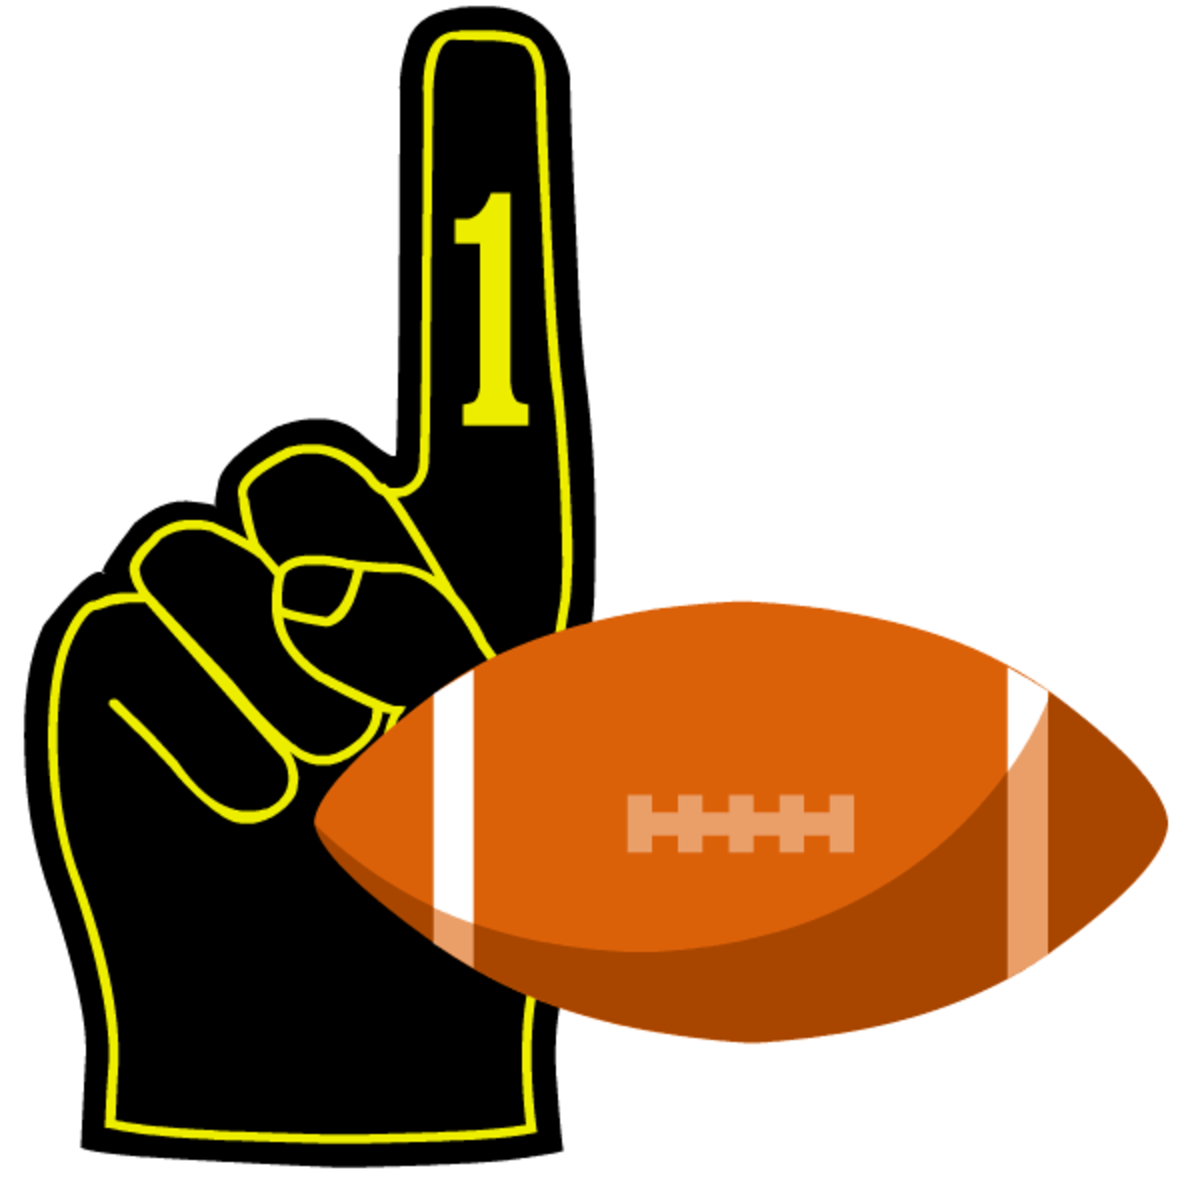 Black number one finger with football clipart